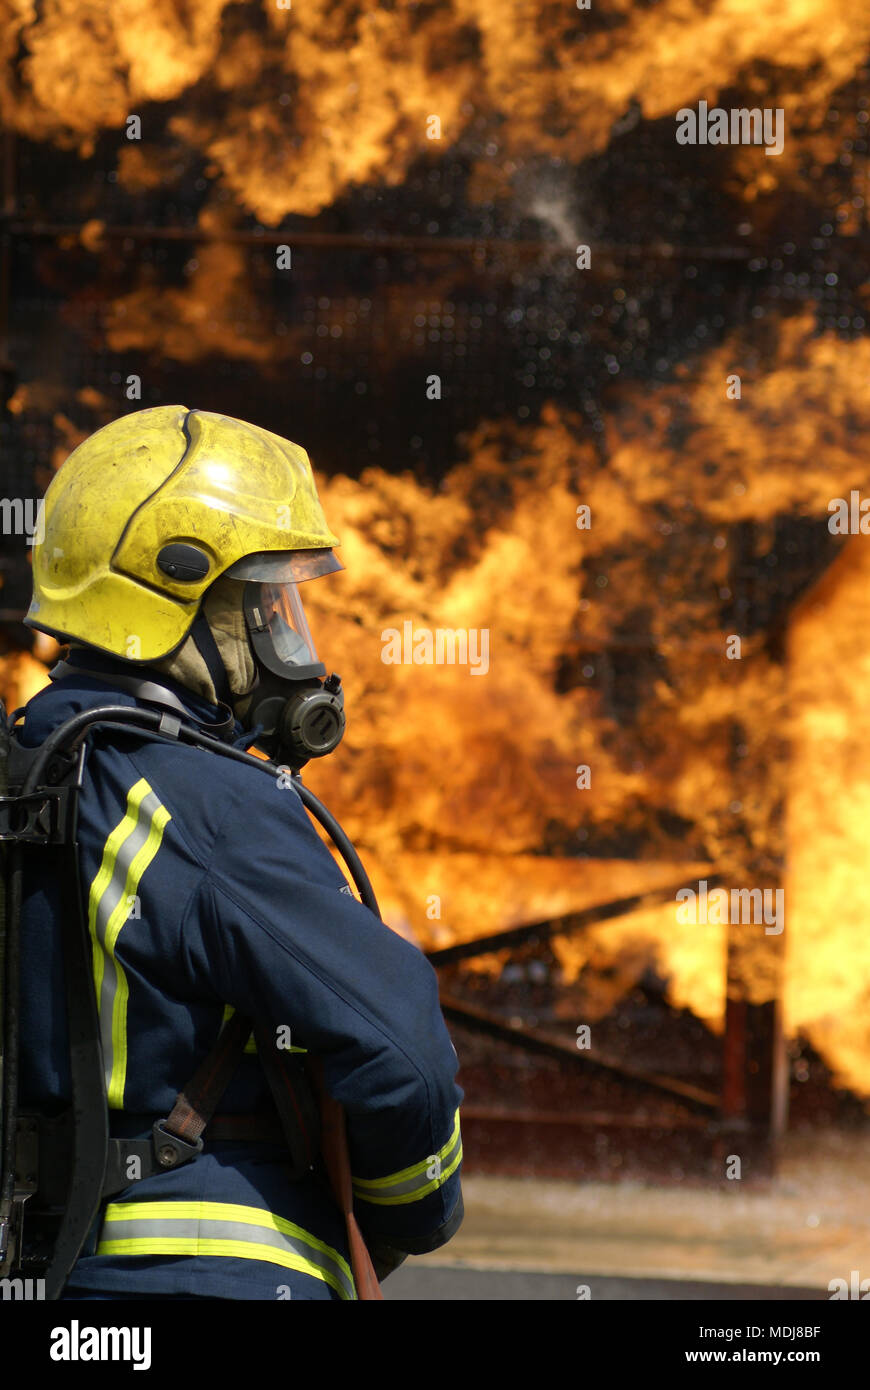 petroleum fuel fire, industrial fire fighting - Stock Image